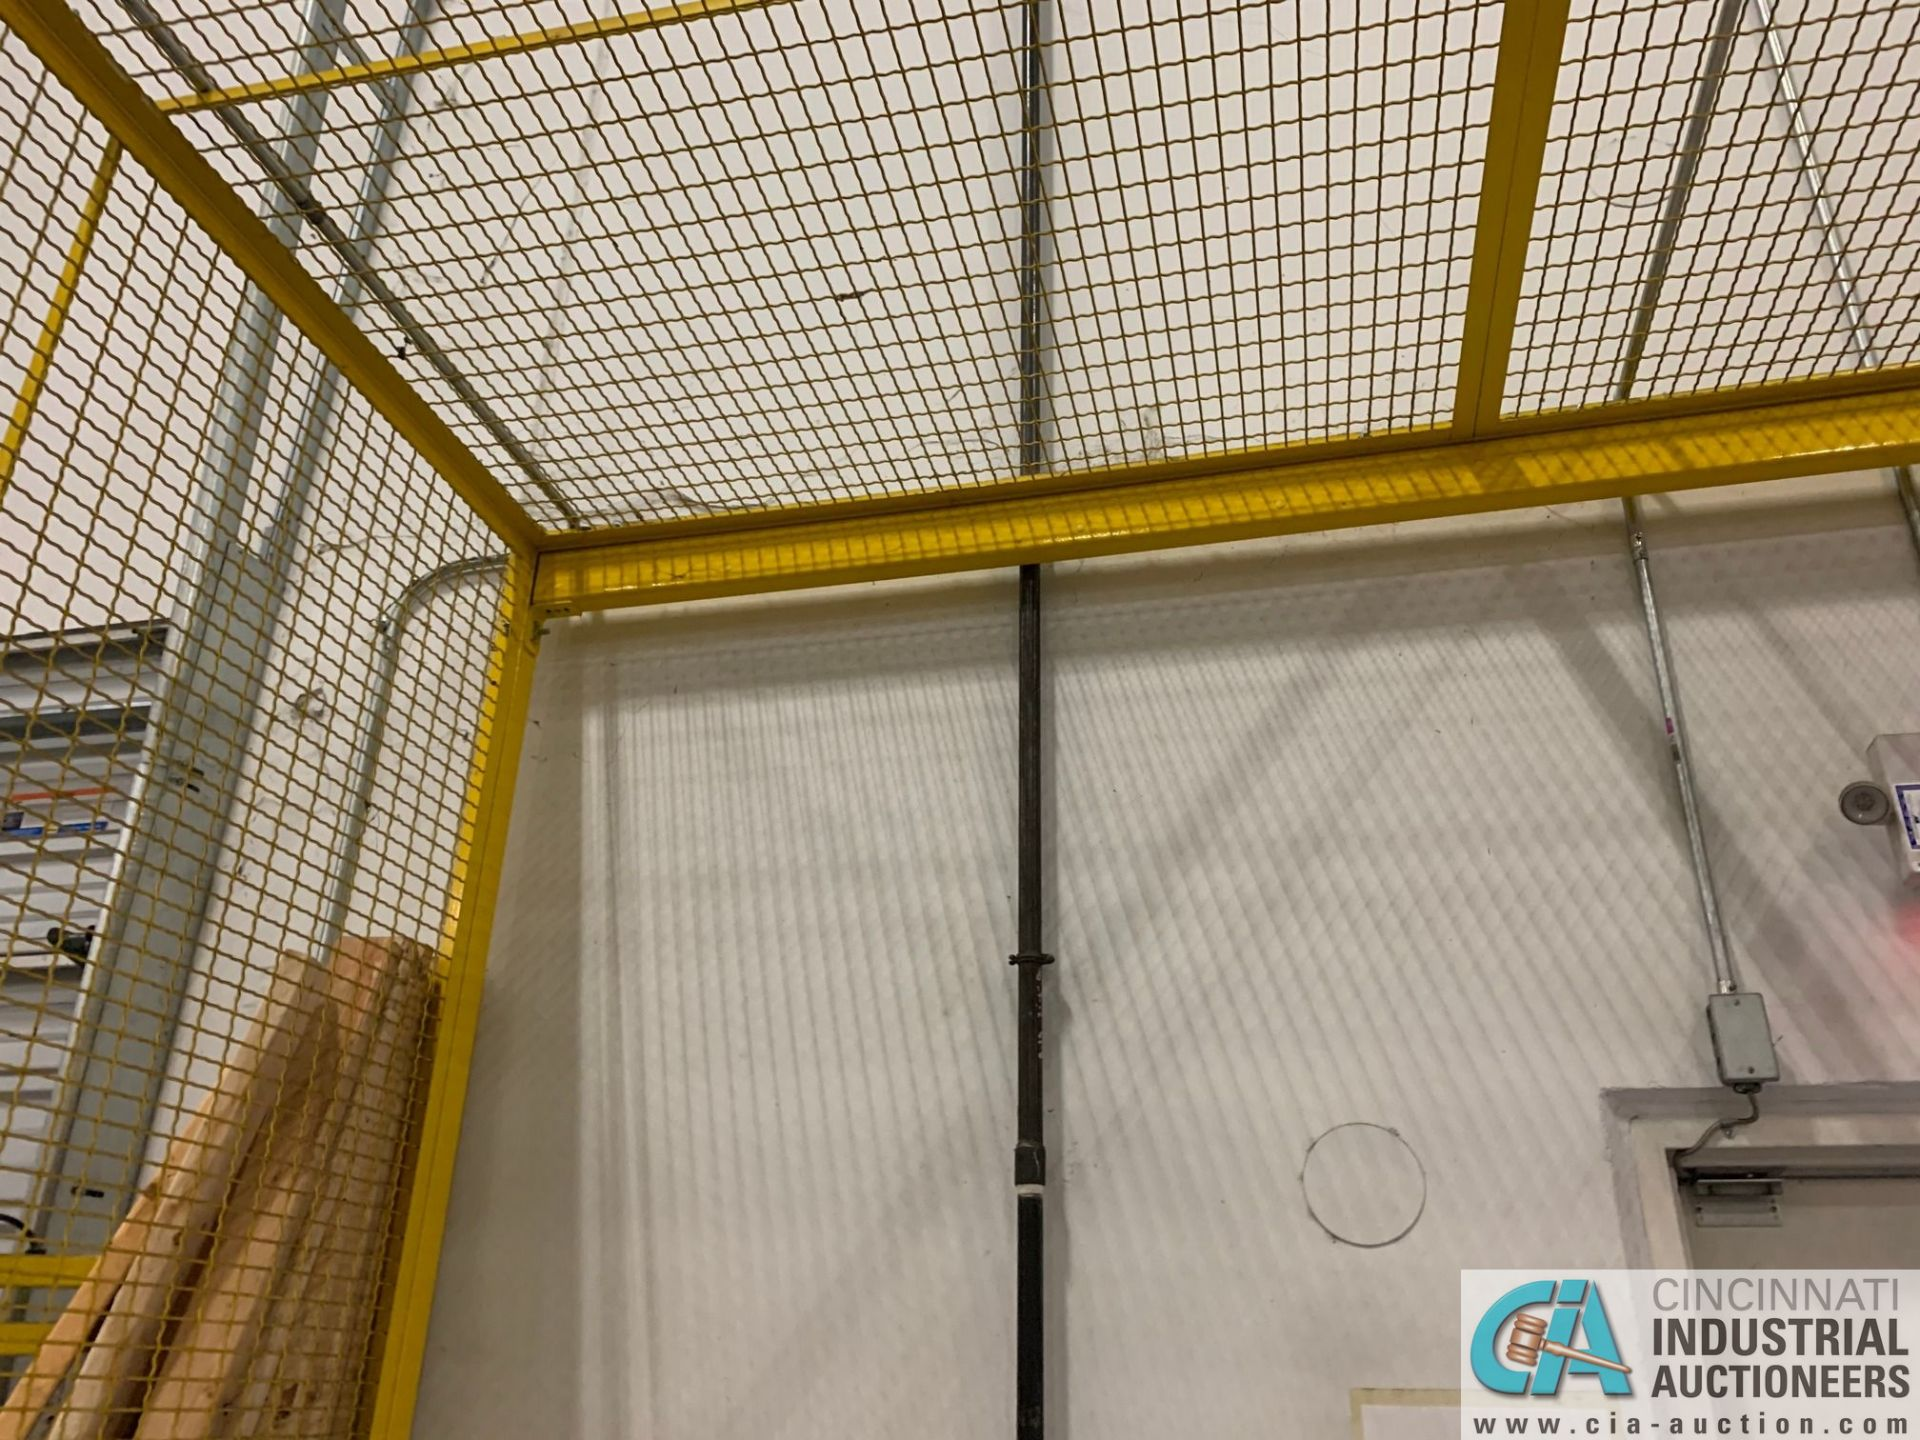 SAFETY CAGE - BACK DRIVERS (5400 OAKLEY INDUSTRIAL BLVD., FAIRBURN, GA 30213) - Image 4 of 7